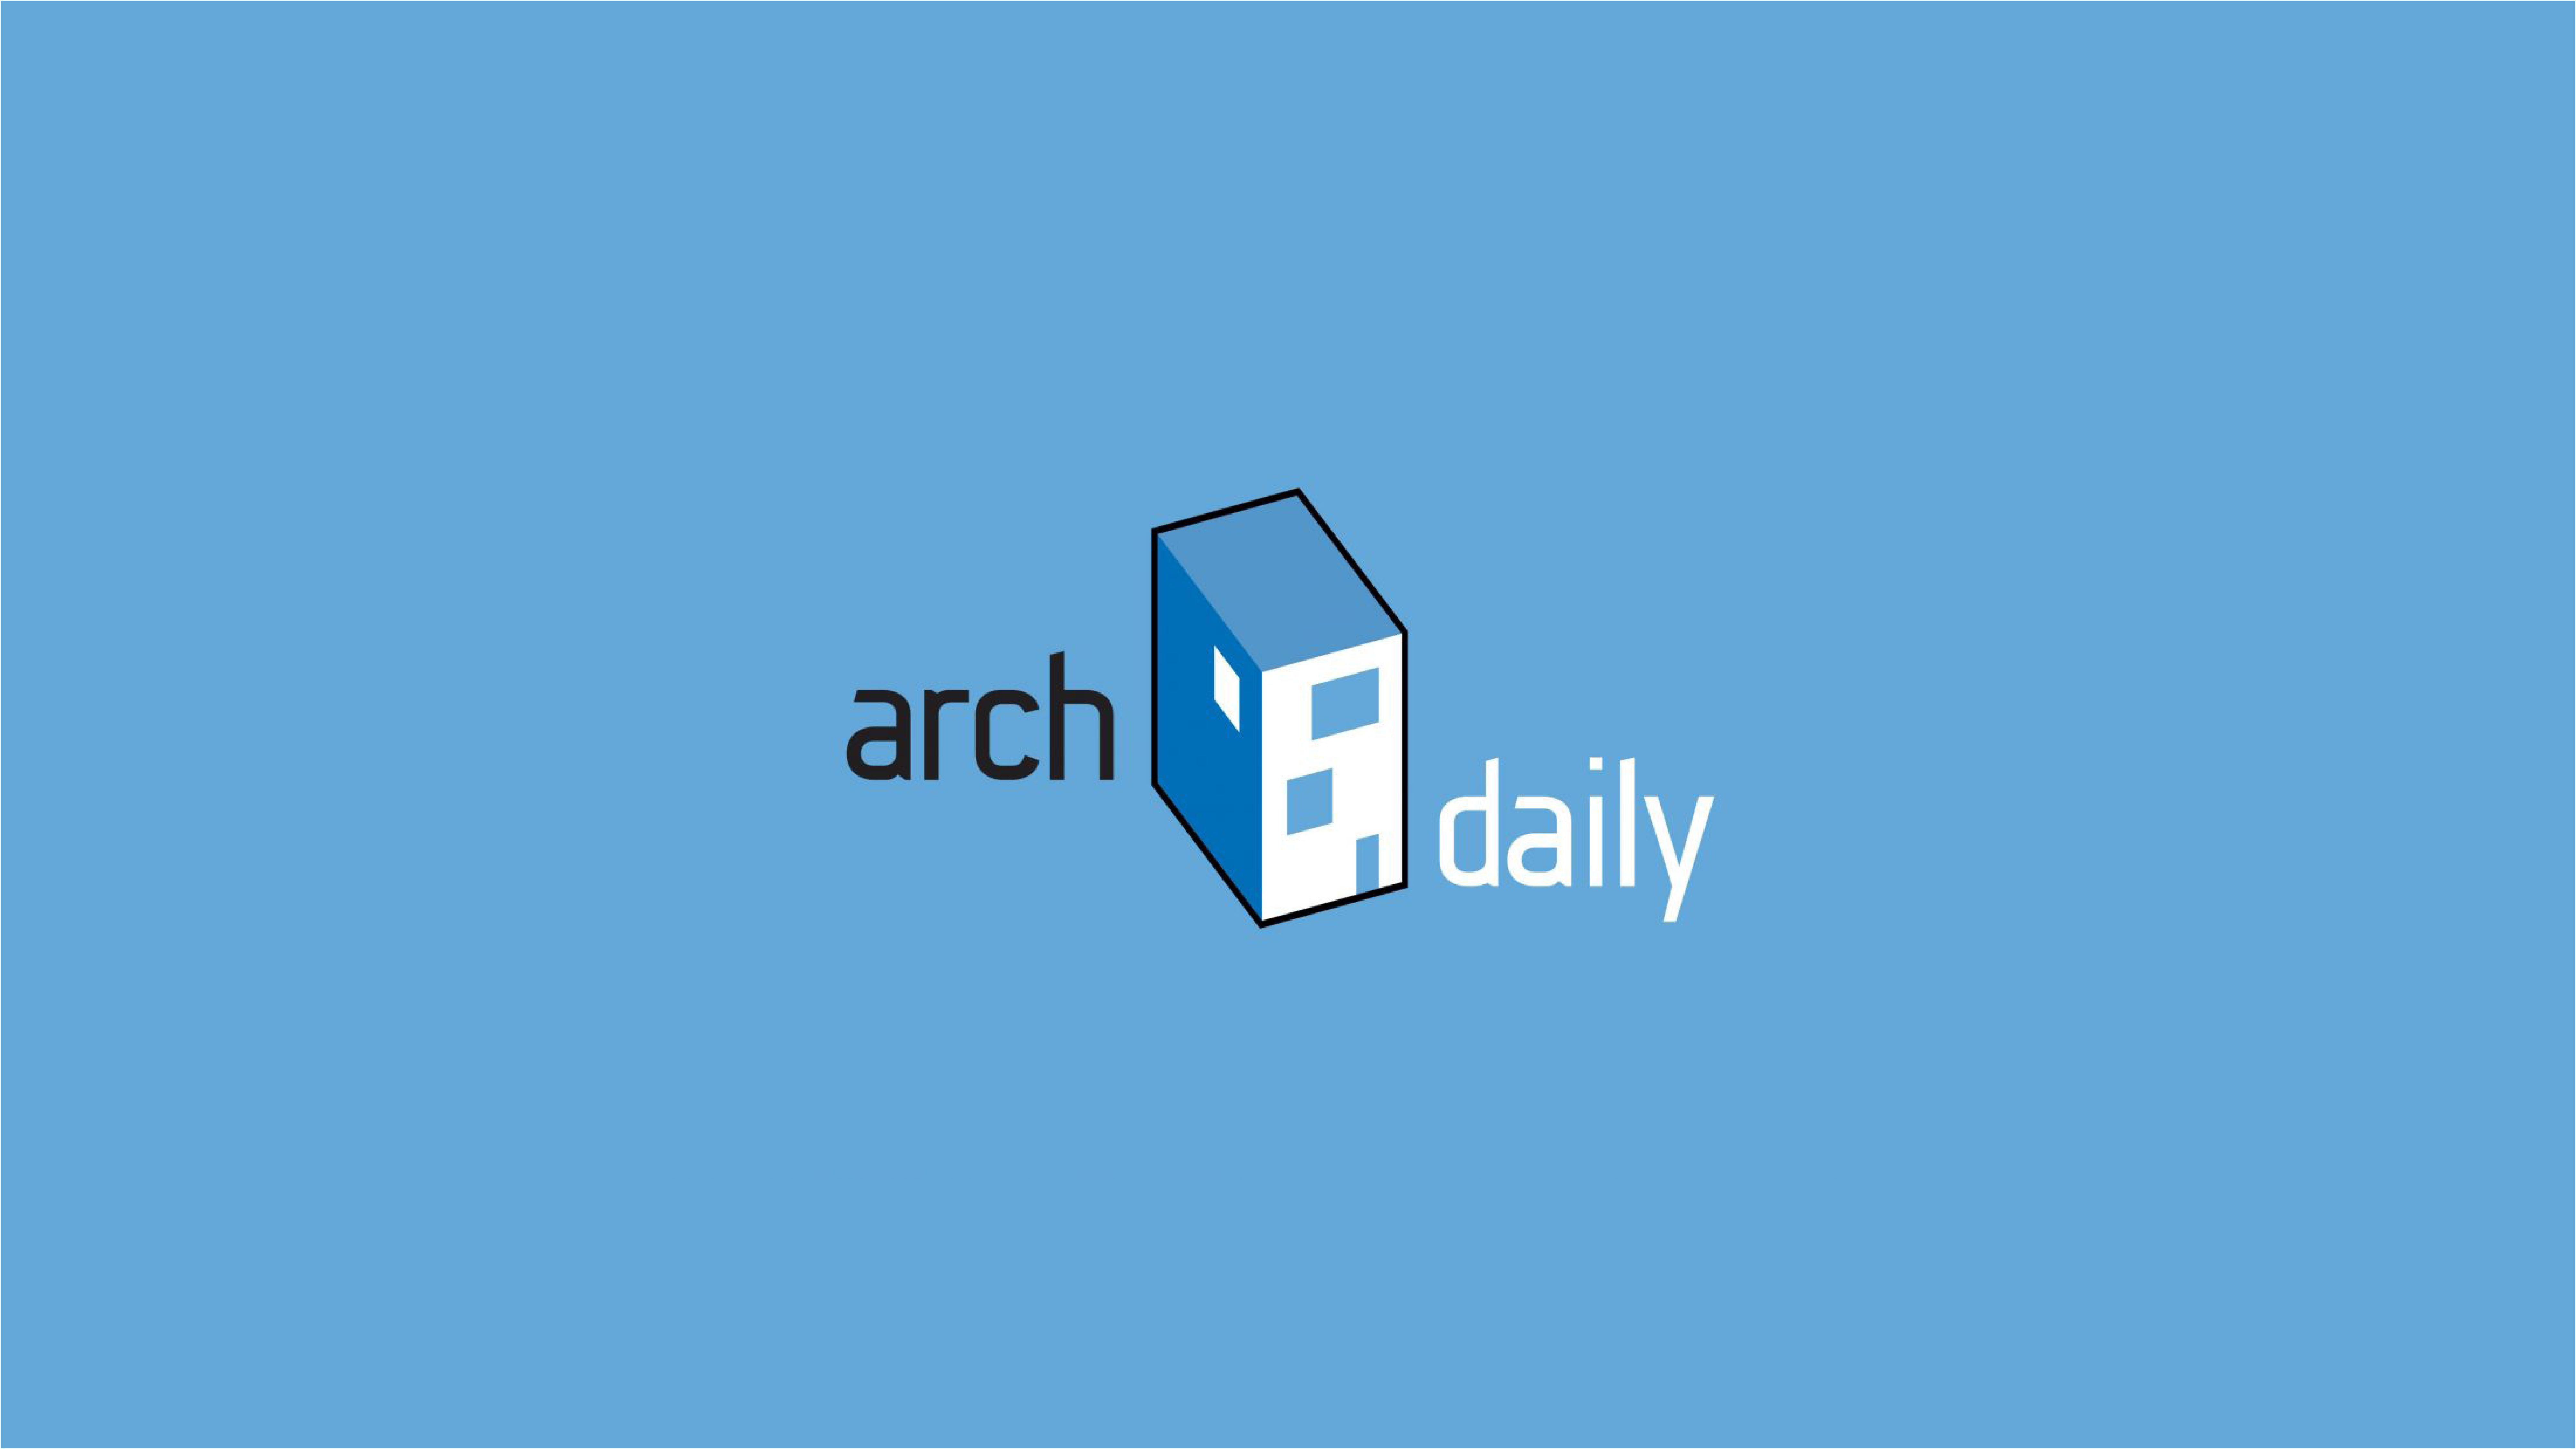 The word ArchDaily on a blue background